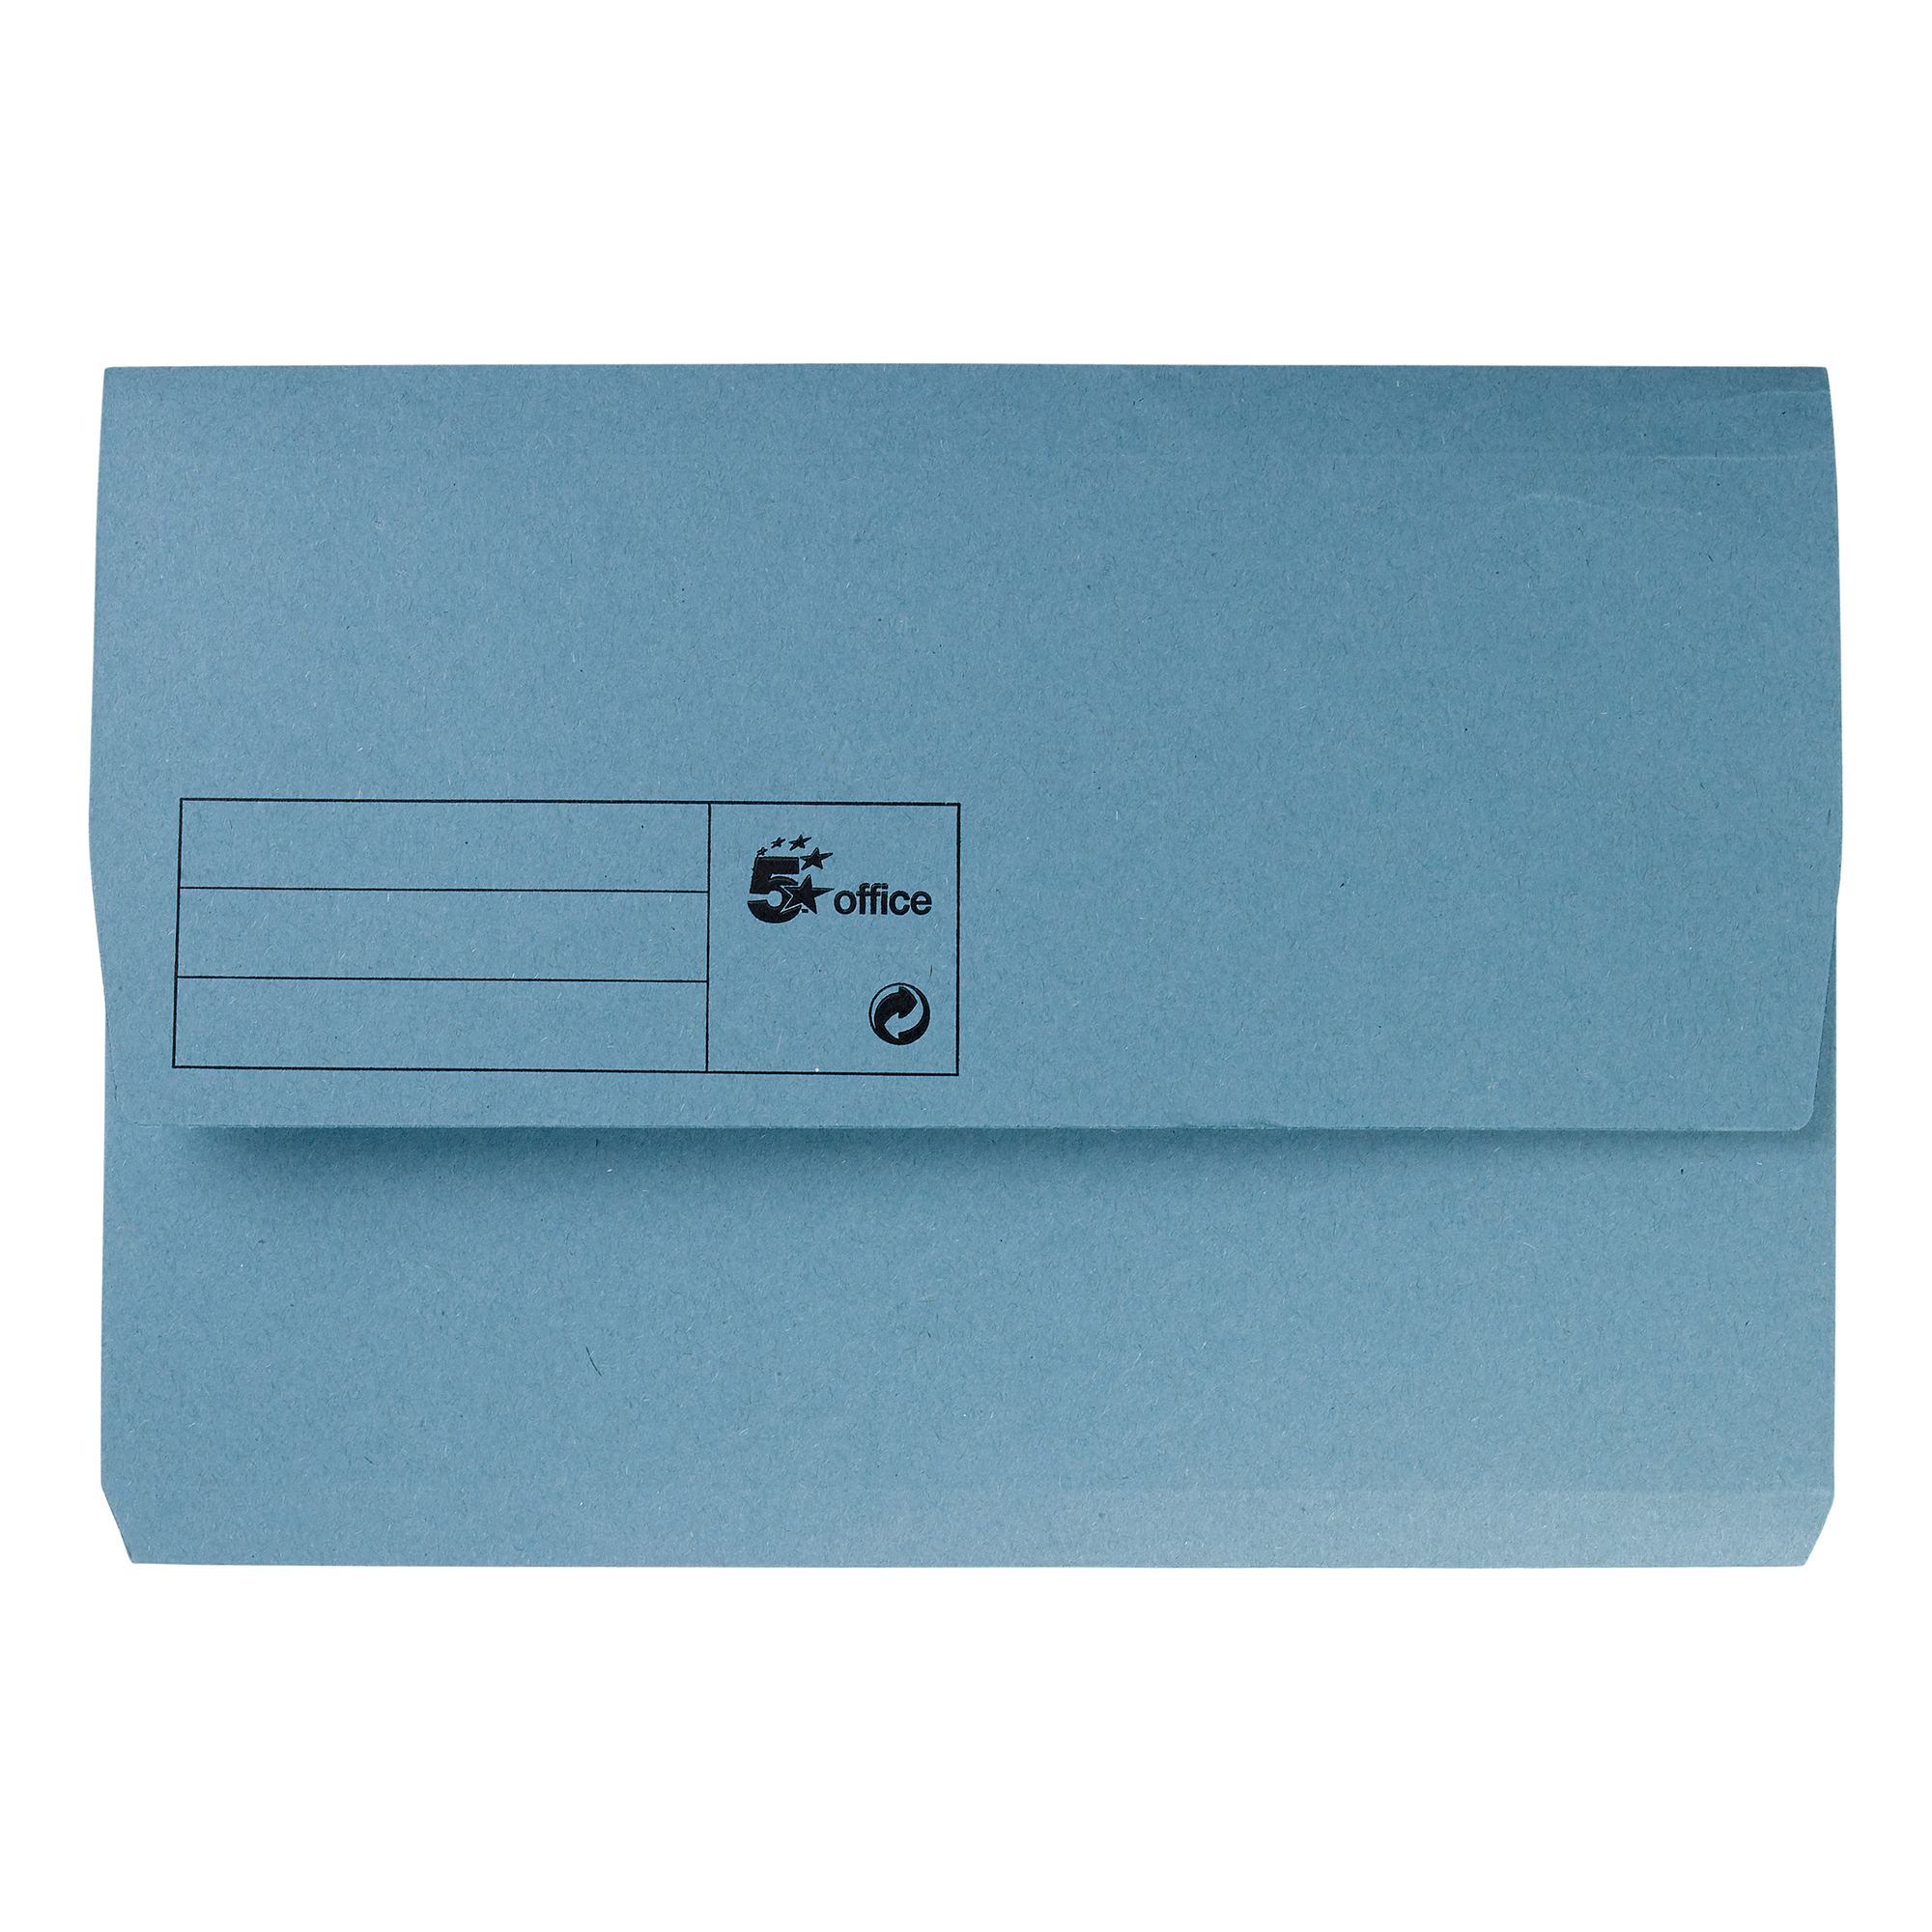 5 Star Office Document Wallet Half Flap 285gsm Recycled Capacity 32mm Foolscap Blue Pack 50